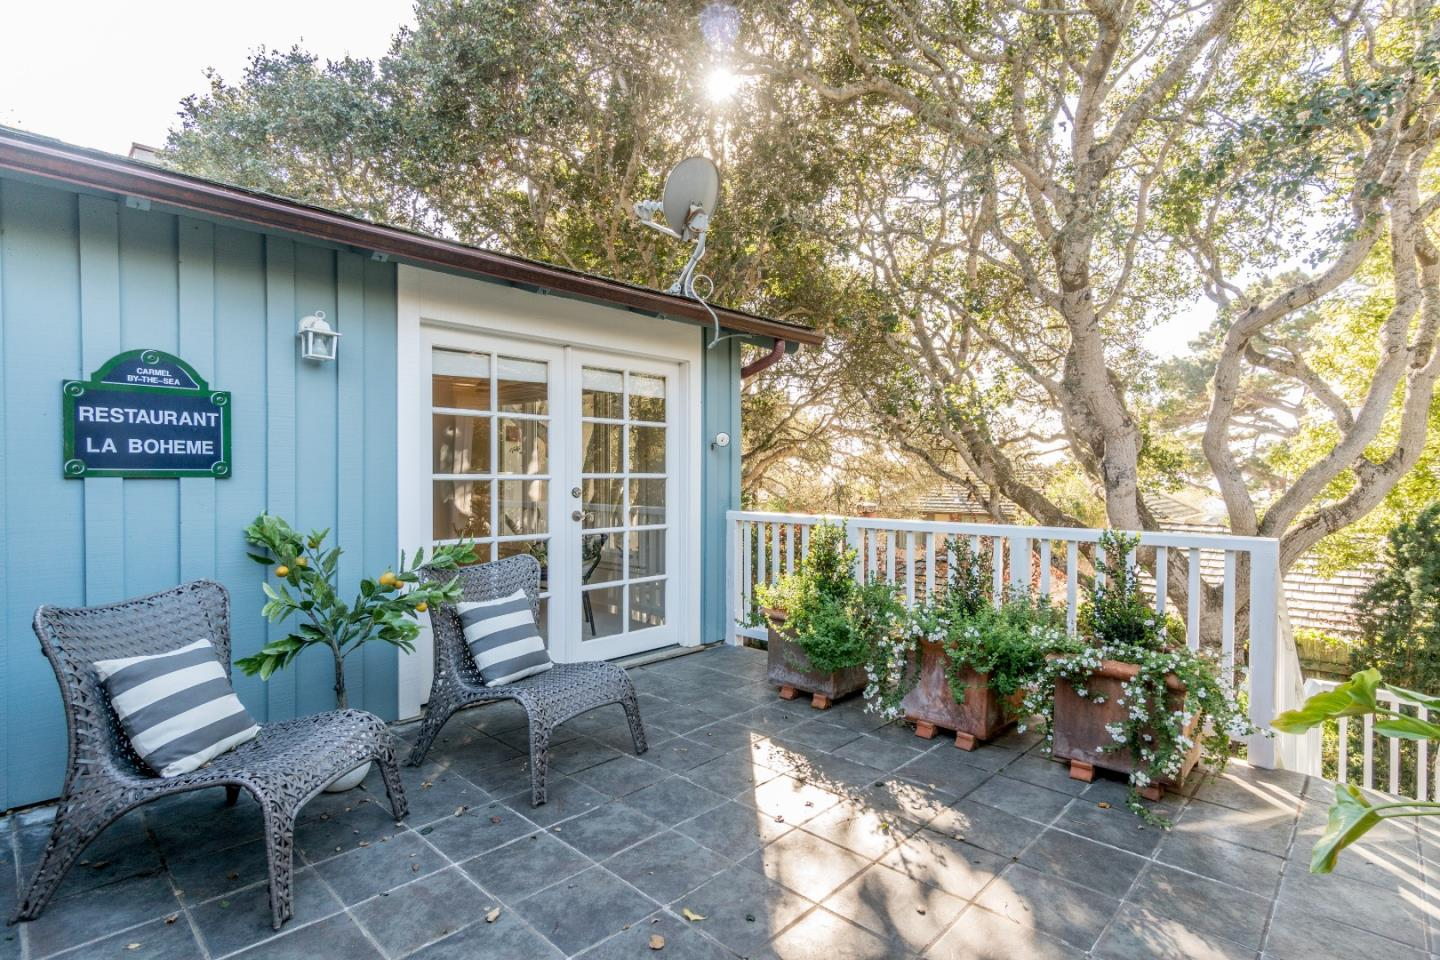 0 Camino Real 3 NW of 8th Carmel, CA 93923 - MLS #: ML81692878